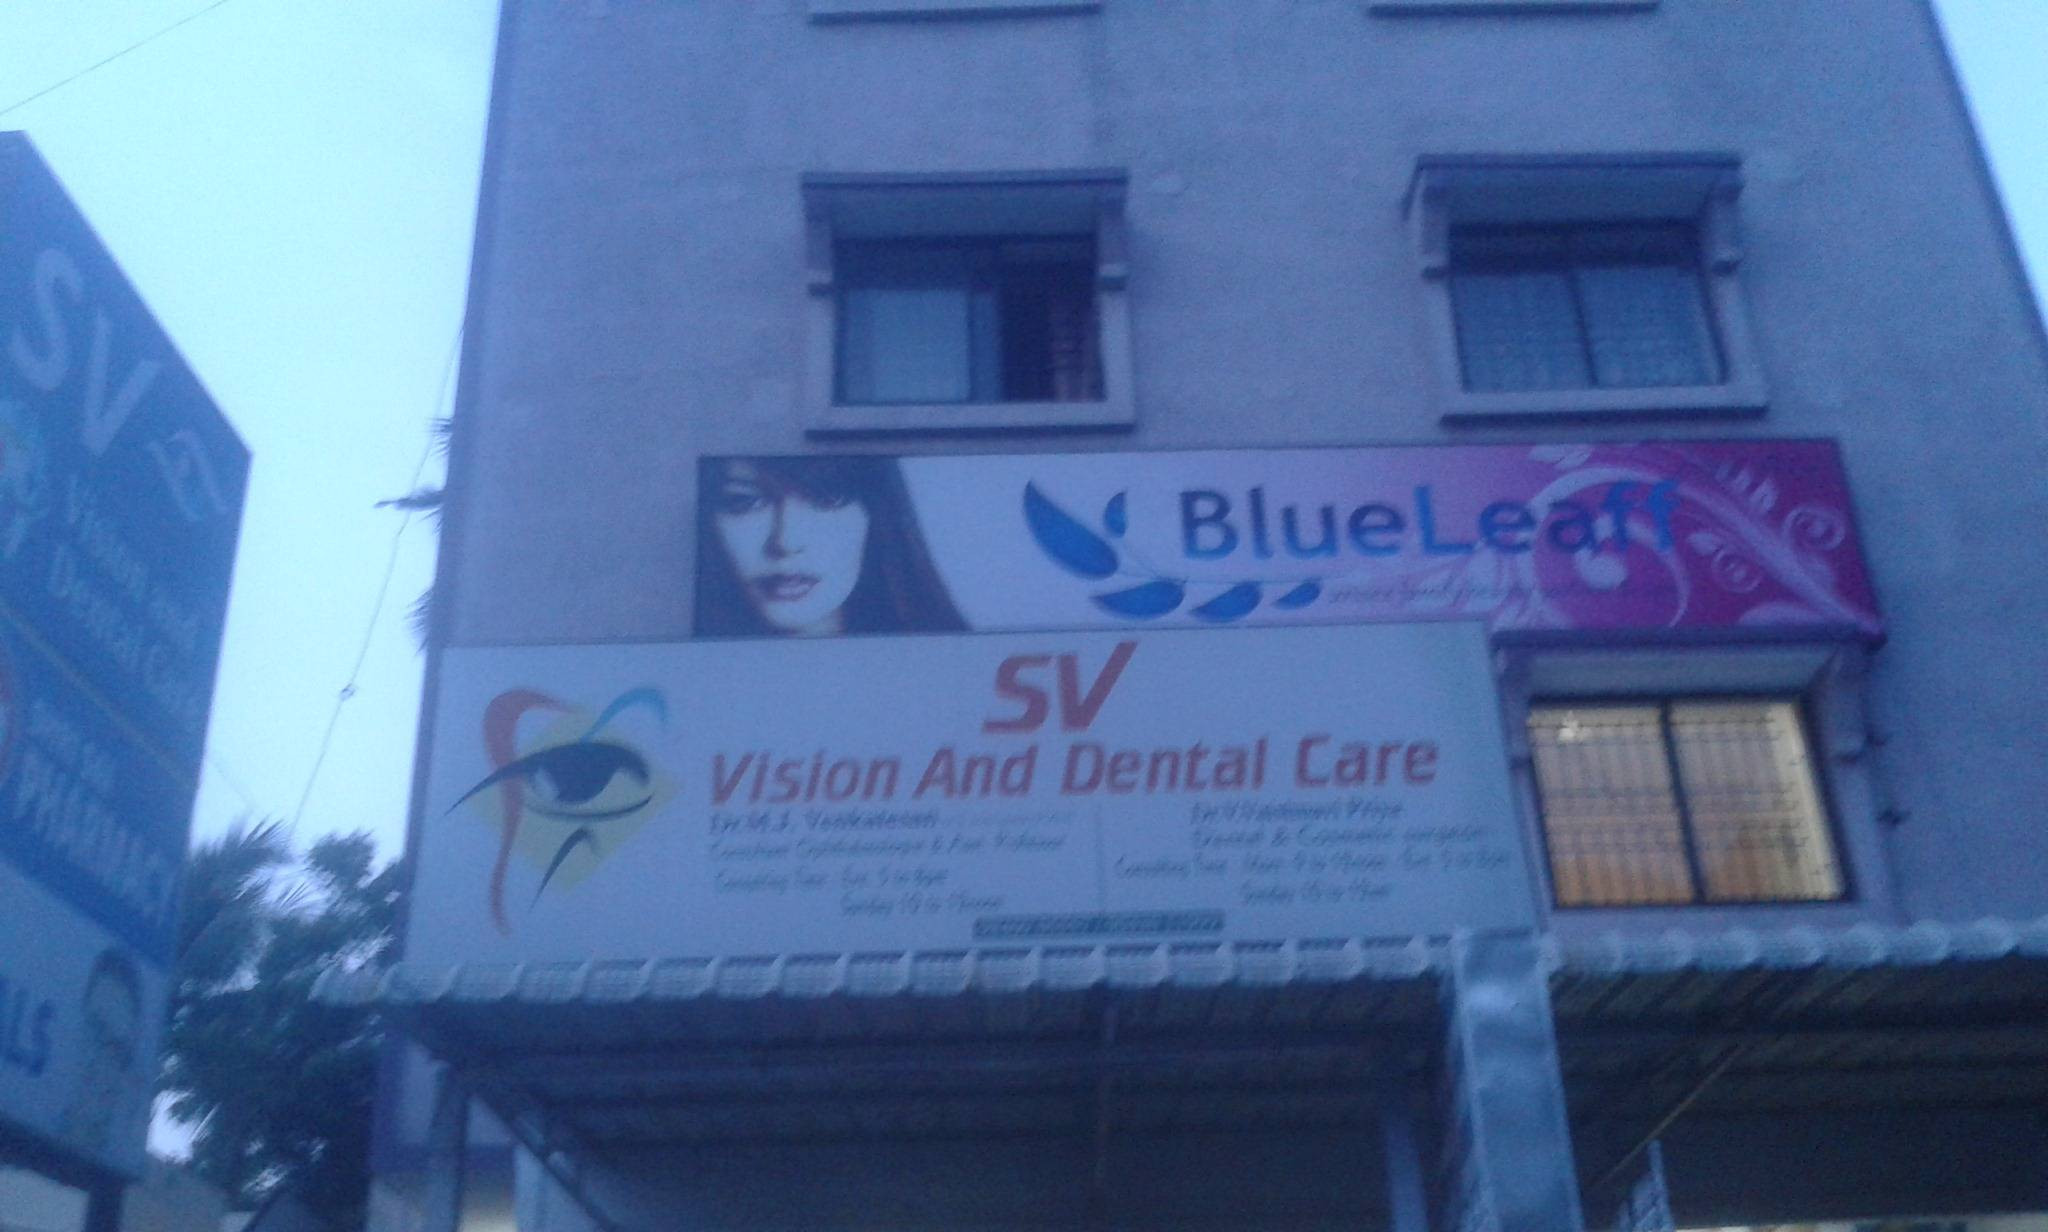 SV vision and Dental Care - Cosmetic Dentist,